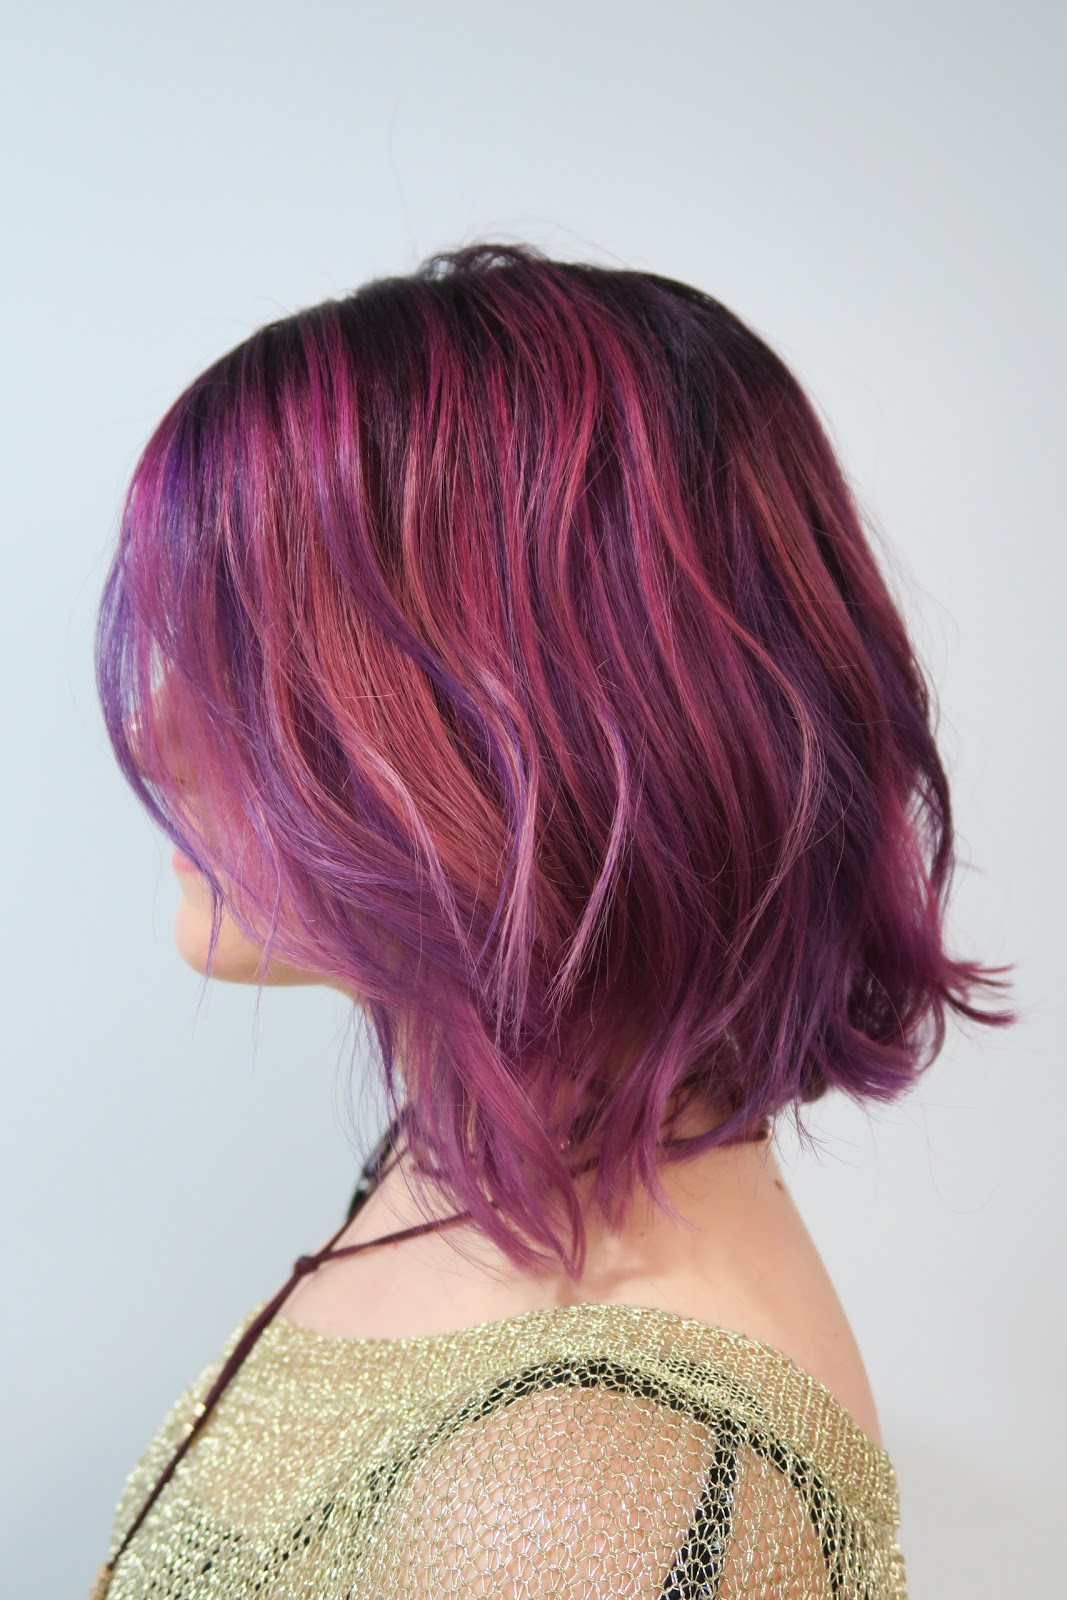 dye hair purple from red